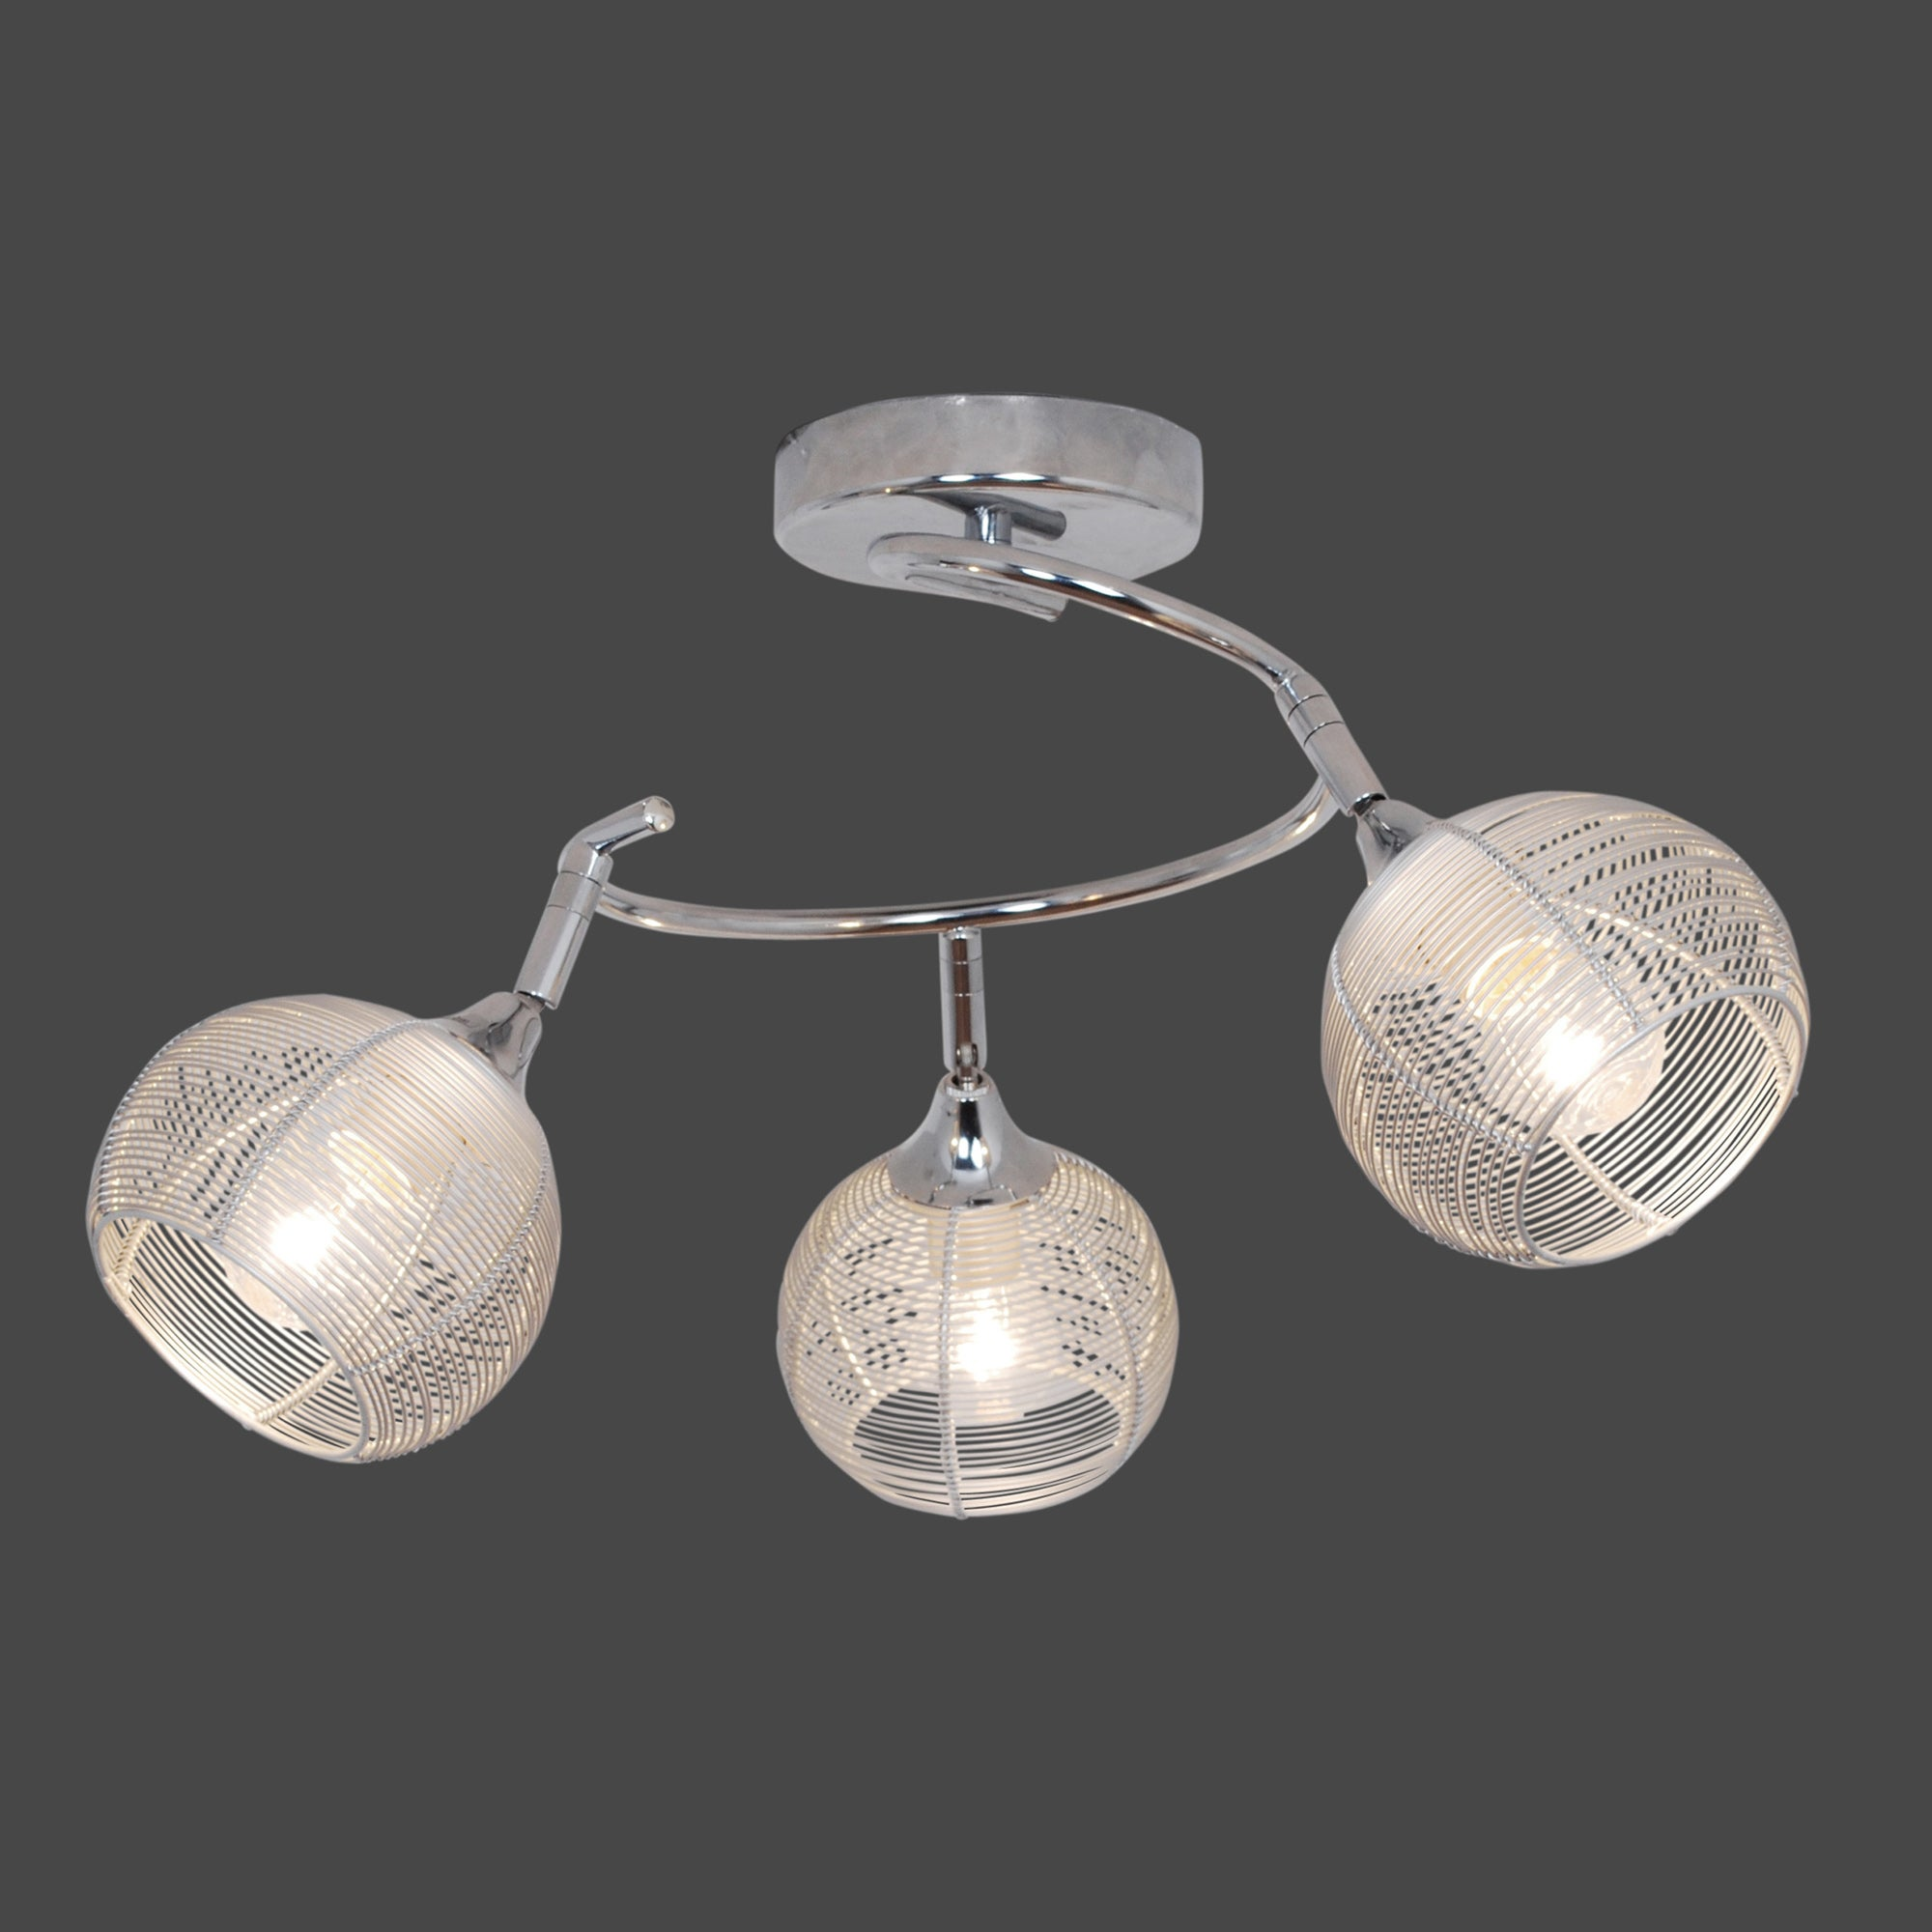 Frankie 3 Light Ceiling Fitting